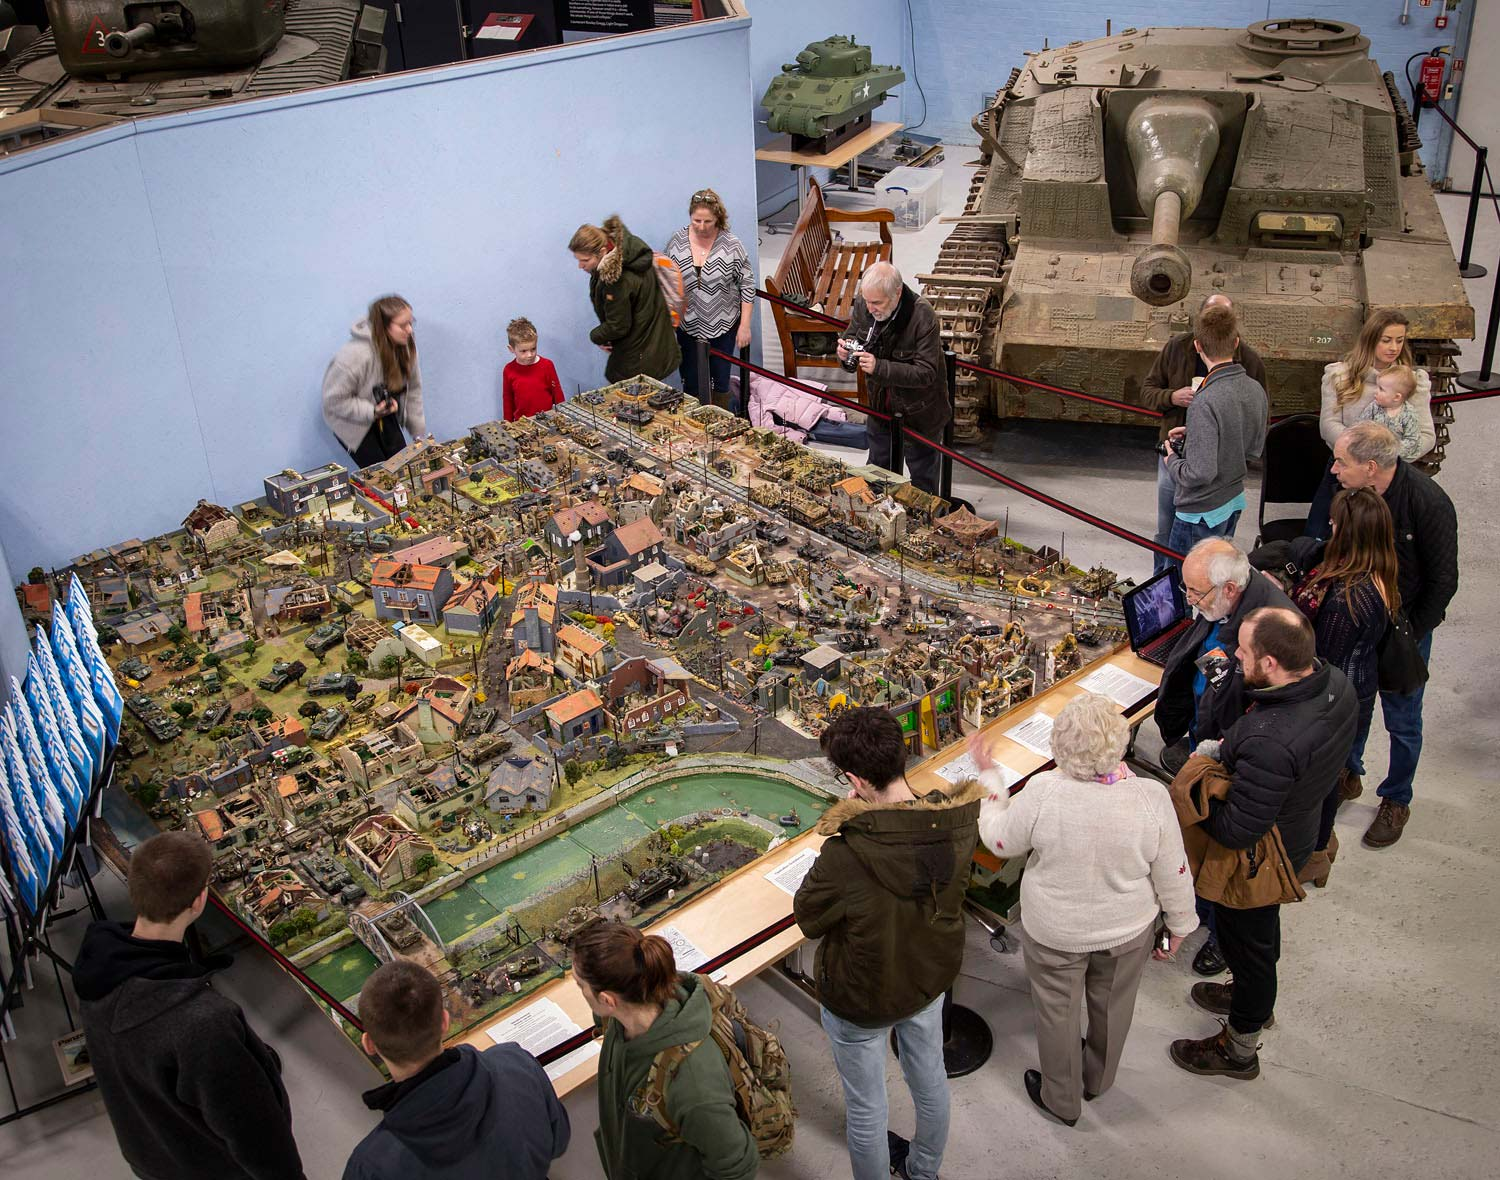 A giant scale model of a WW2 scene installed at The Tank Museum